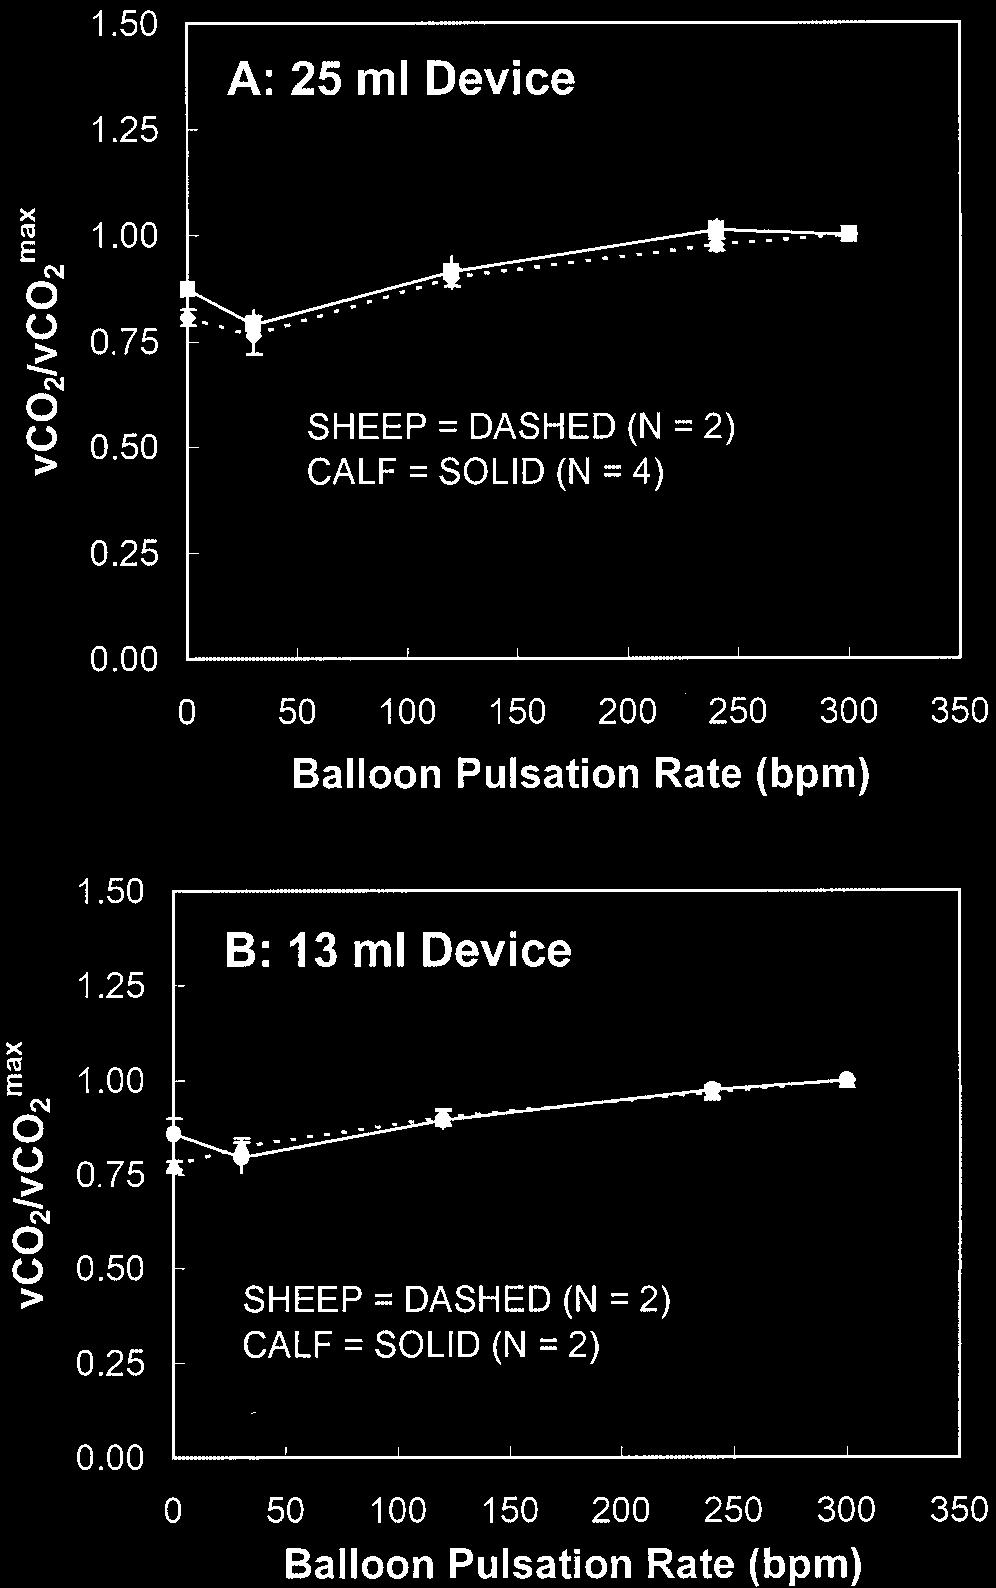 374 EASH ET AL. Figure 5. Plasma free hemoglobin data: baseline vs final. Figure 4. CO 2 exchange over maximum CO 2 exchange vs balloon pulsation rate in the inferior vena cava location.